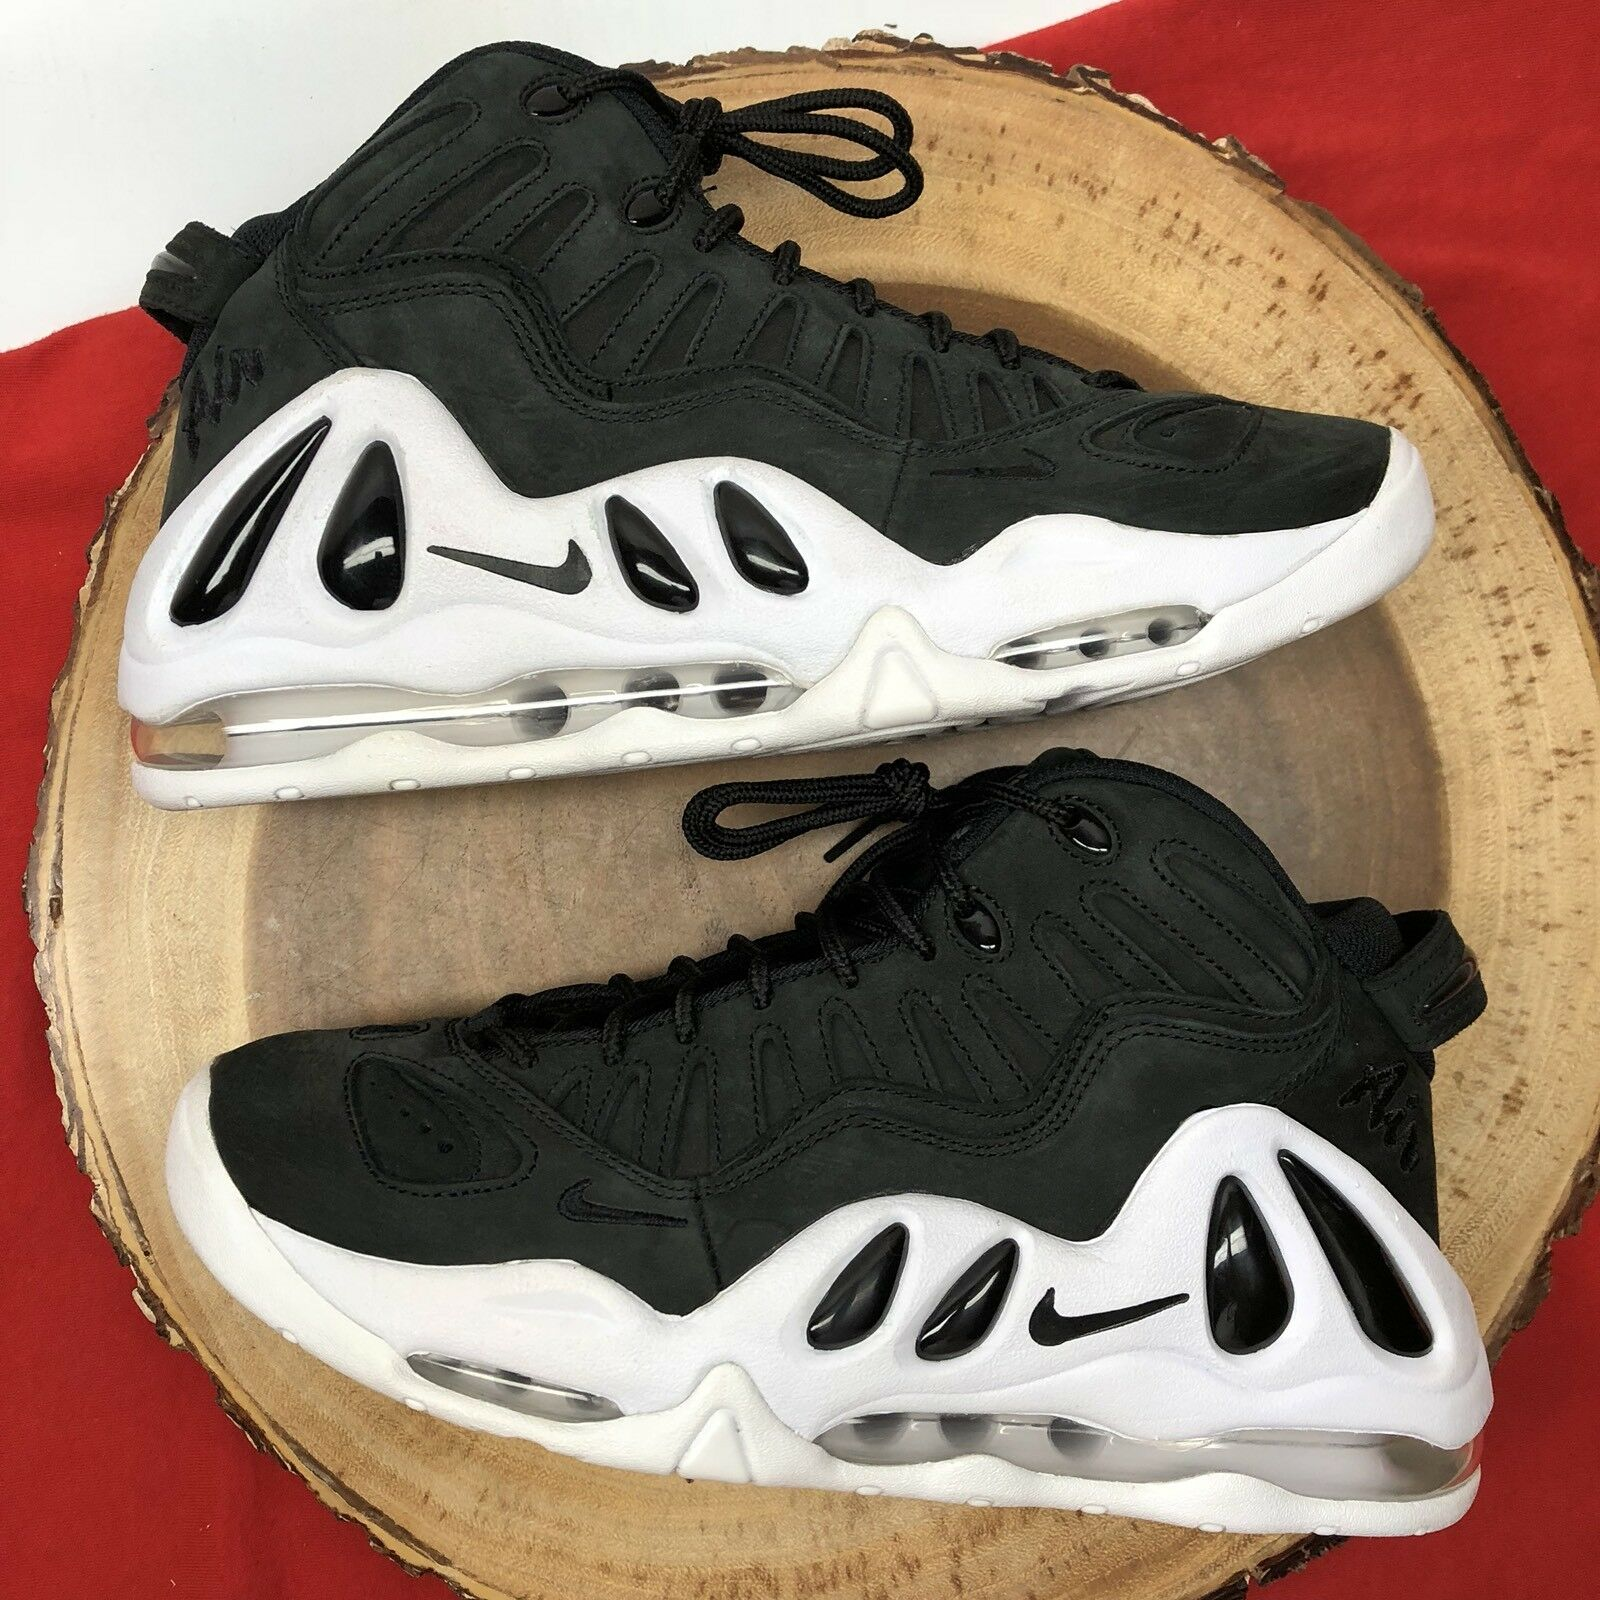 Nike Air Max Uptempo 97 Pippen Oreo Black White Comfortable